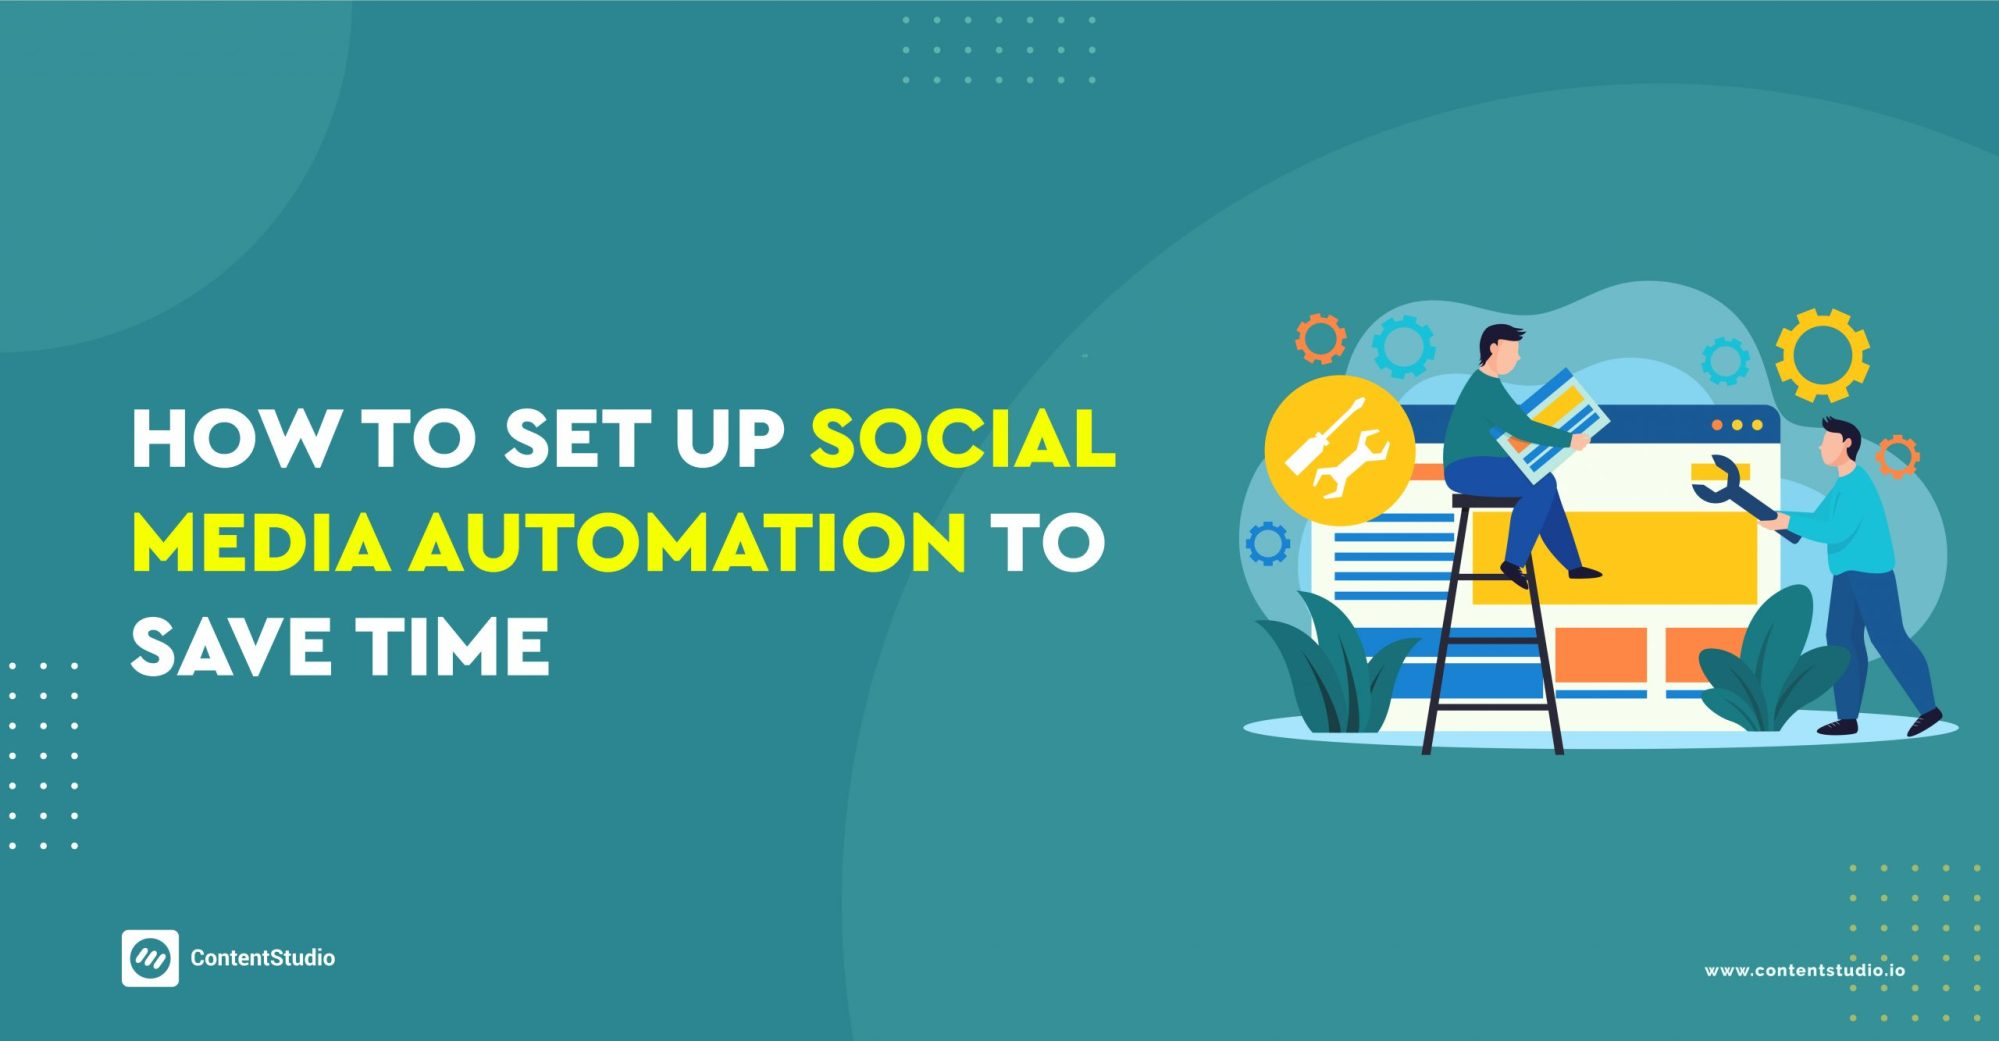 social media automation to save time